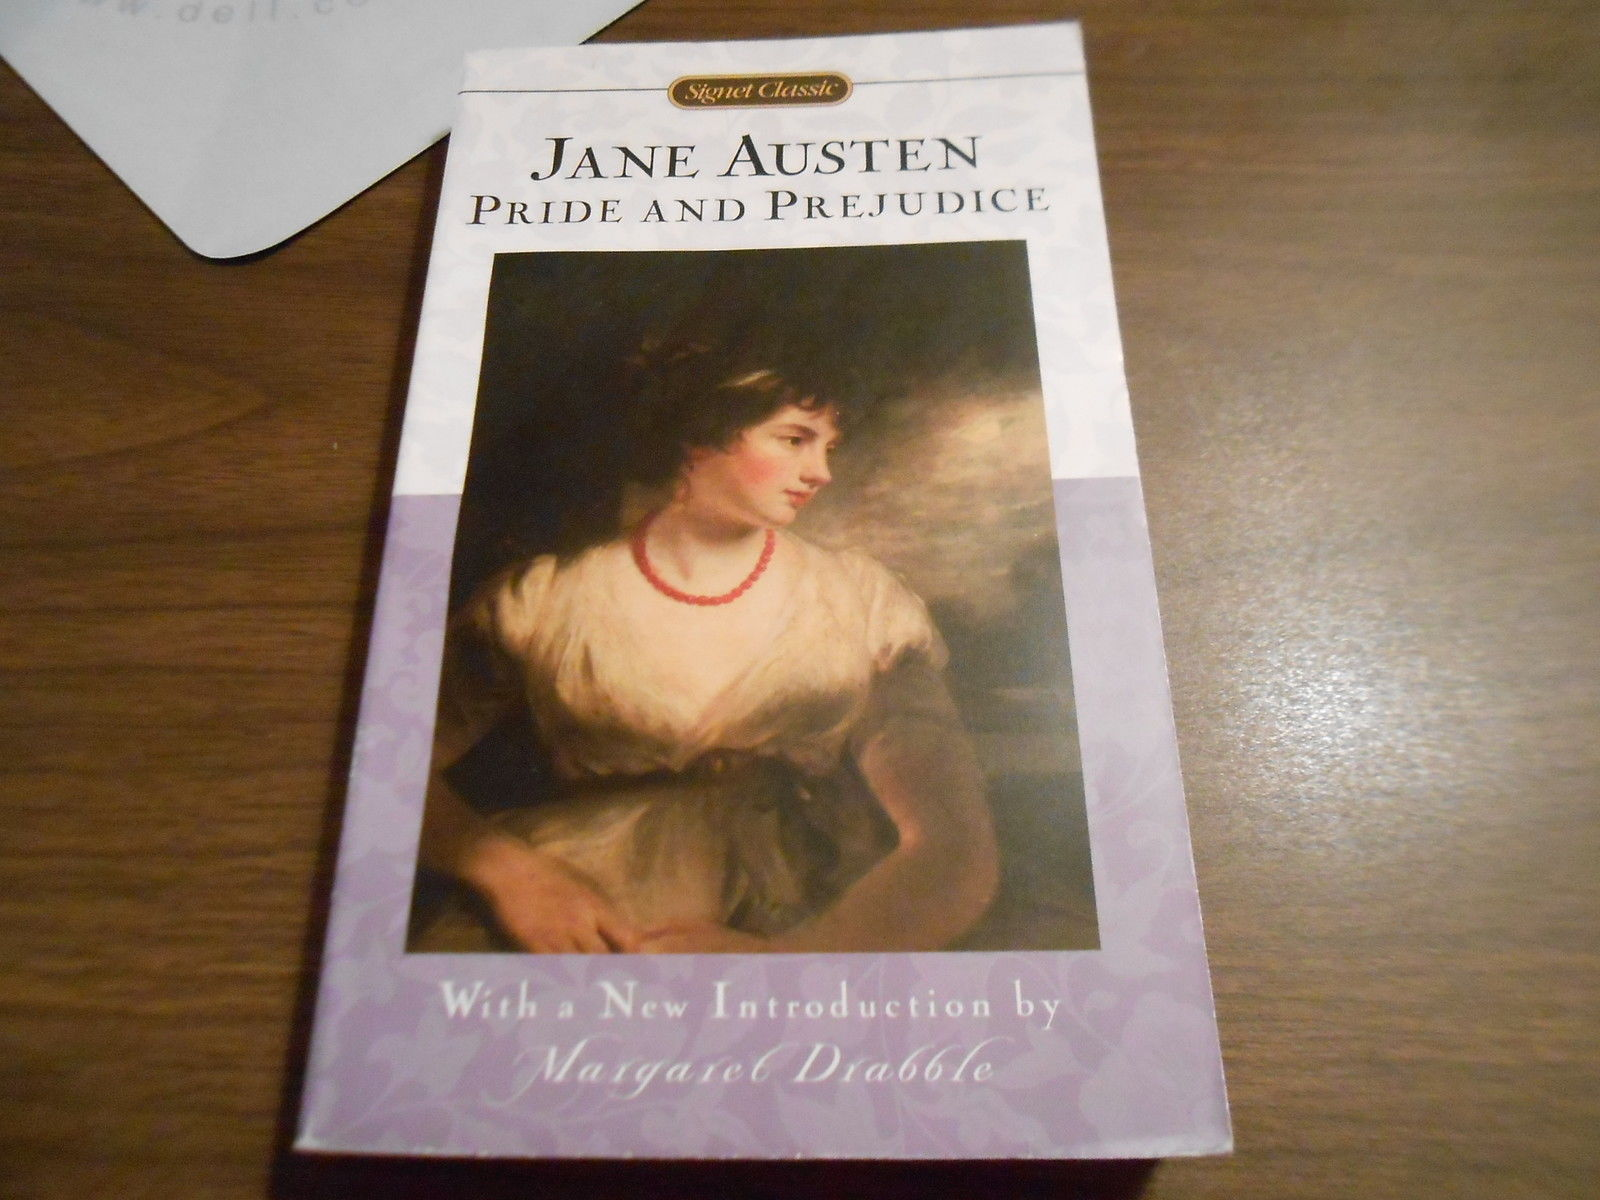 jane austen dissertations Recommended citation grupico, veronica, beyond the pages: the significance of the social self proposed in jane austen's persuasion (2014) seton hall university dissertations and theses (etds).